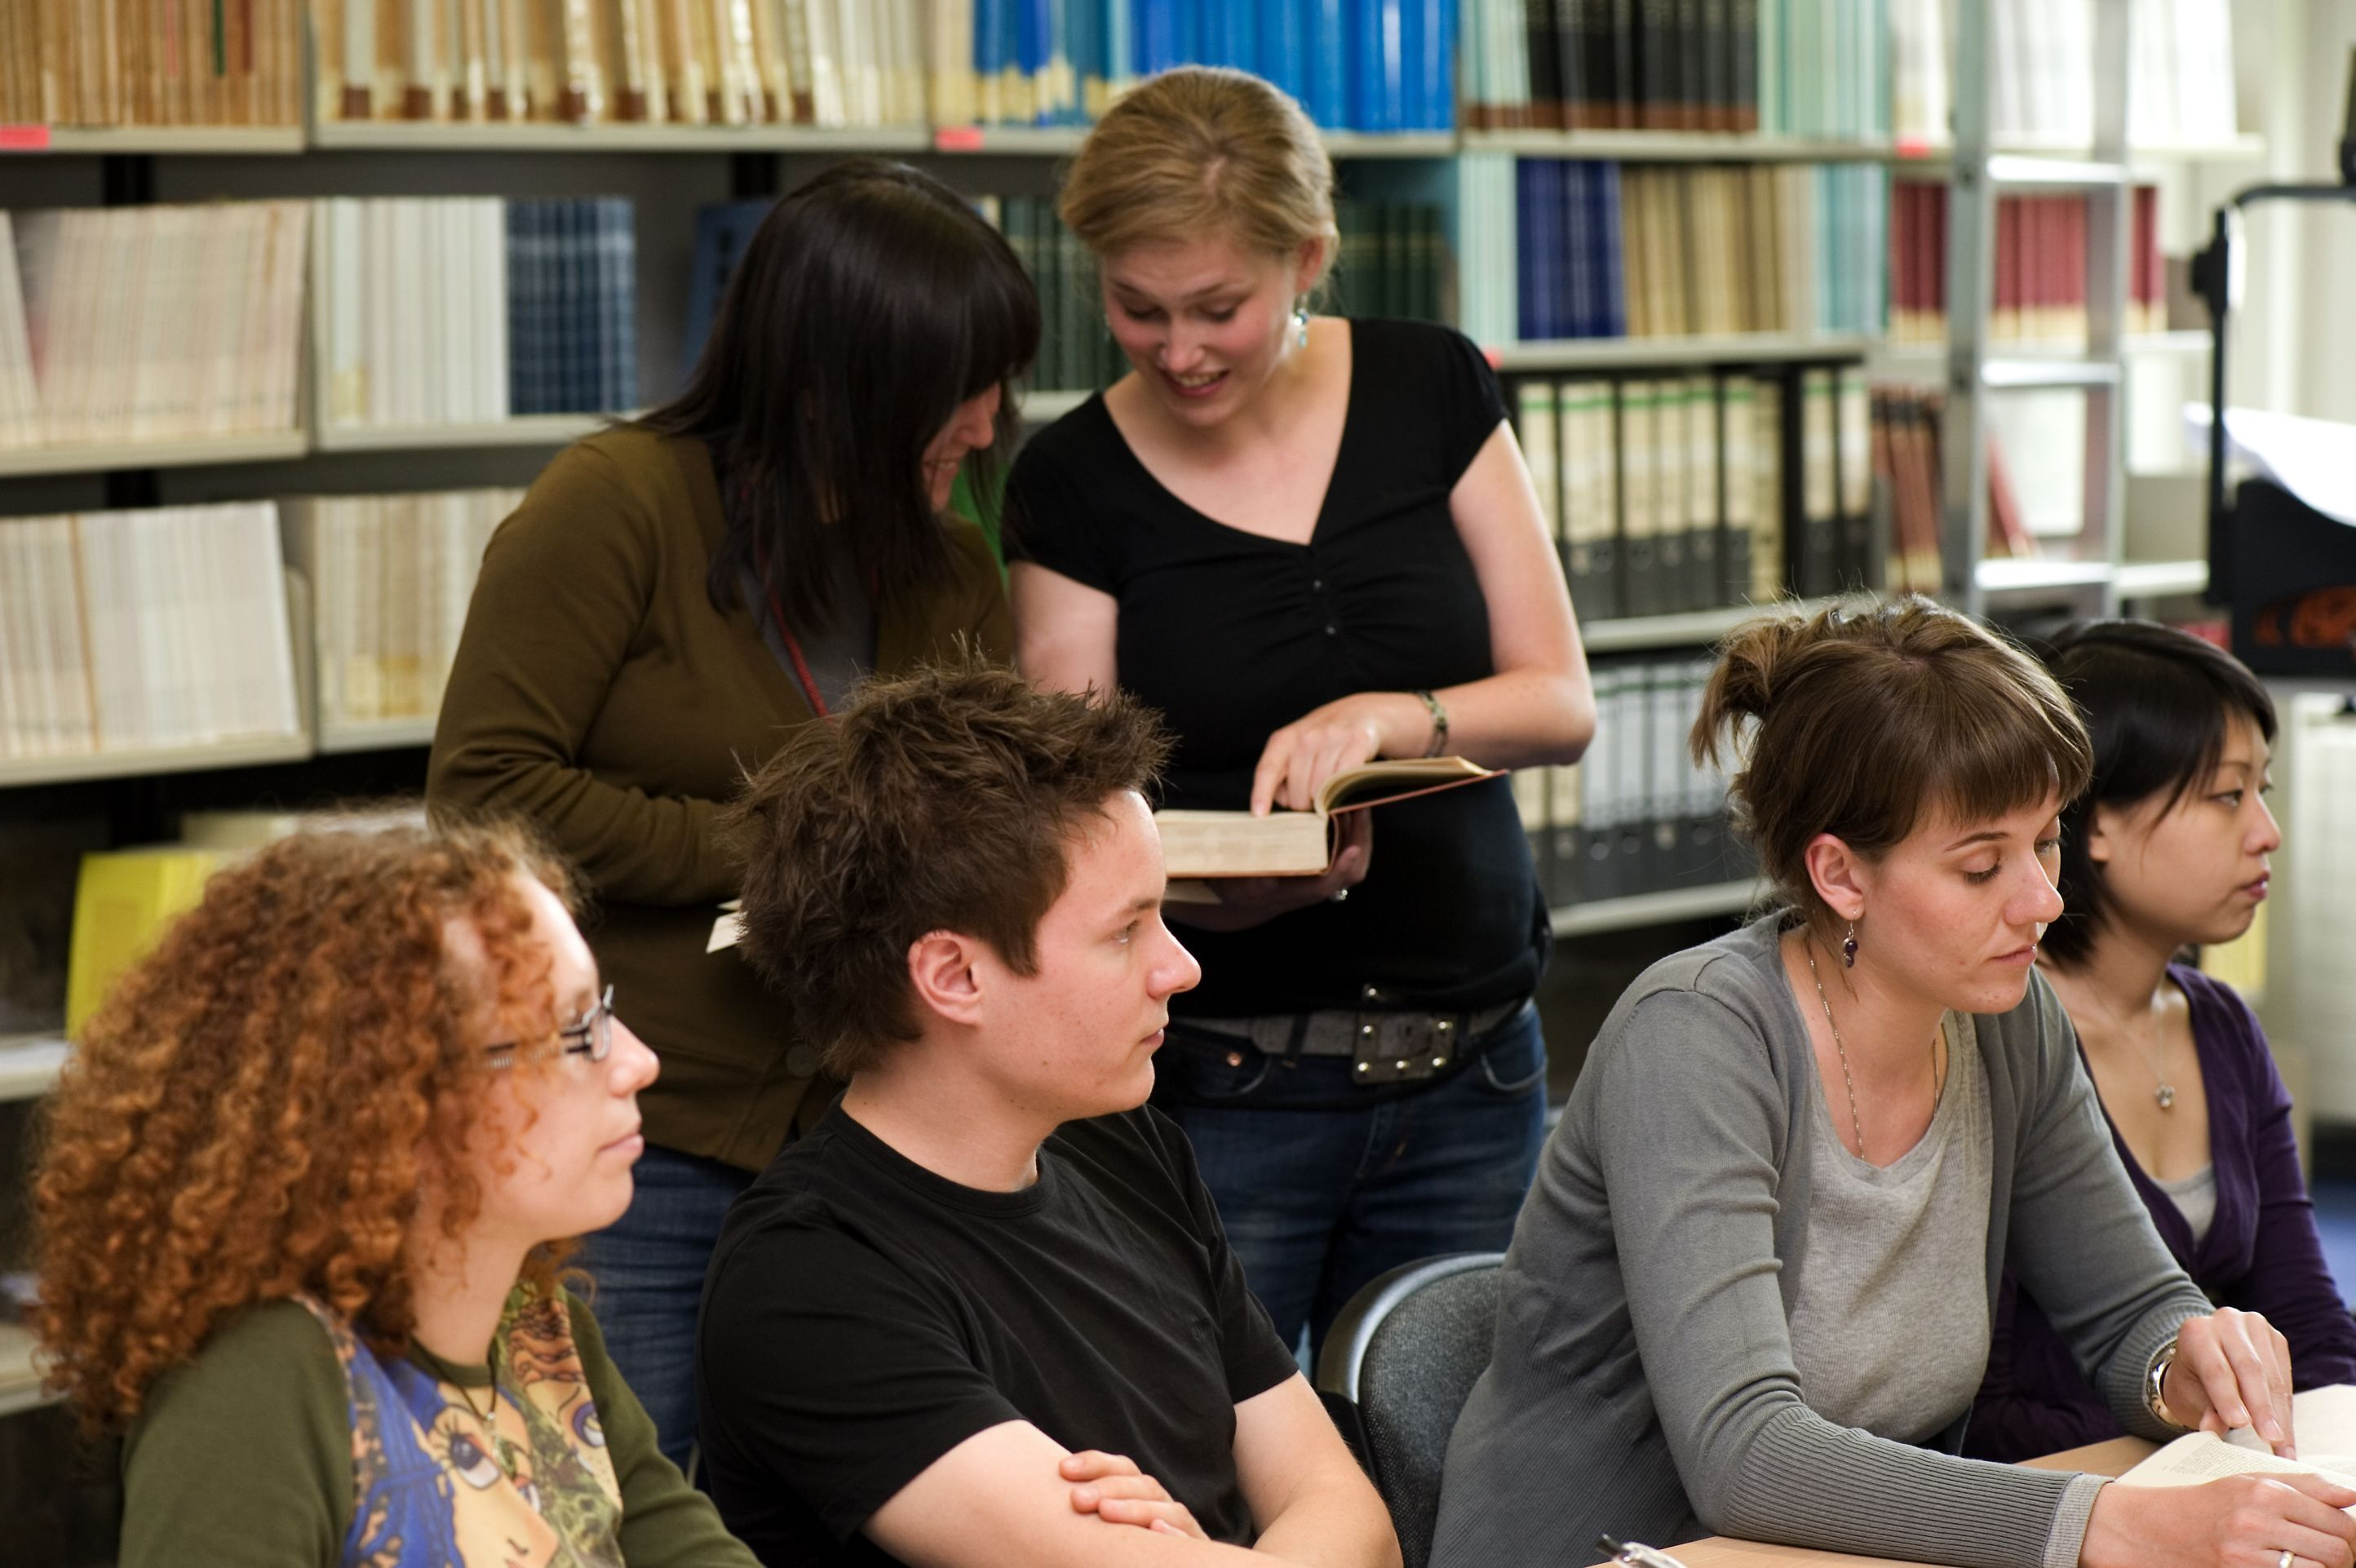 A Class Taking Place in the University Library